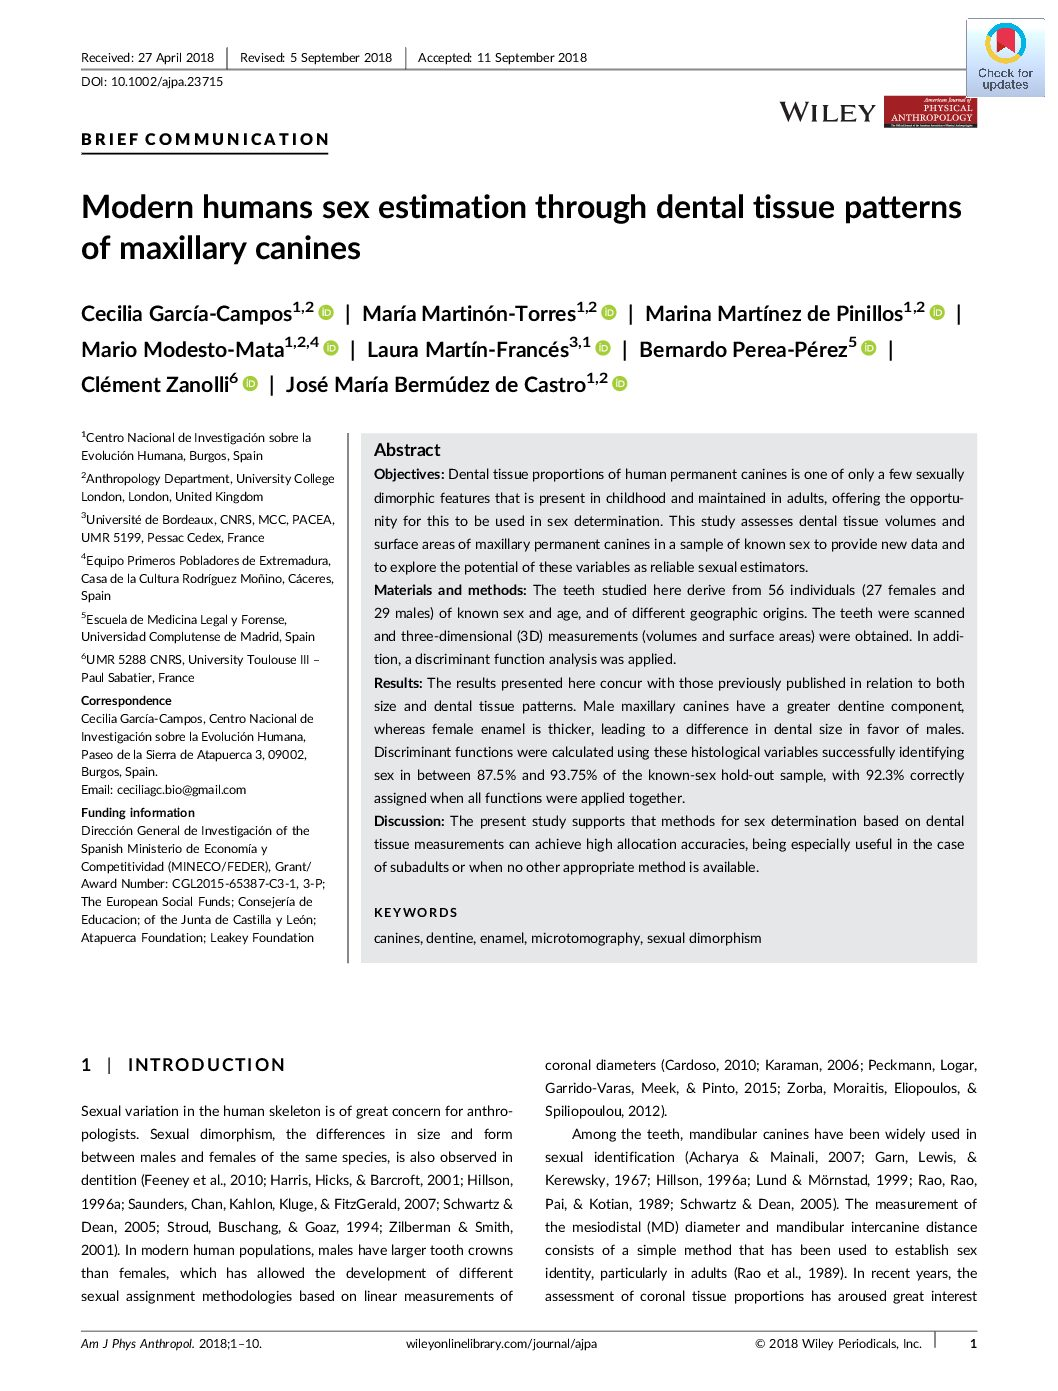 Modern humans sex estimation through dental tissue patterns of maxillary canines